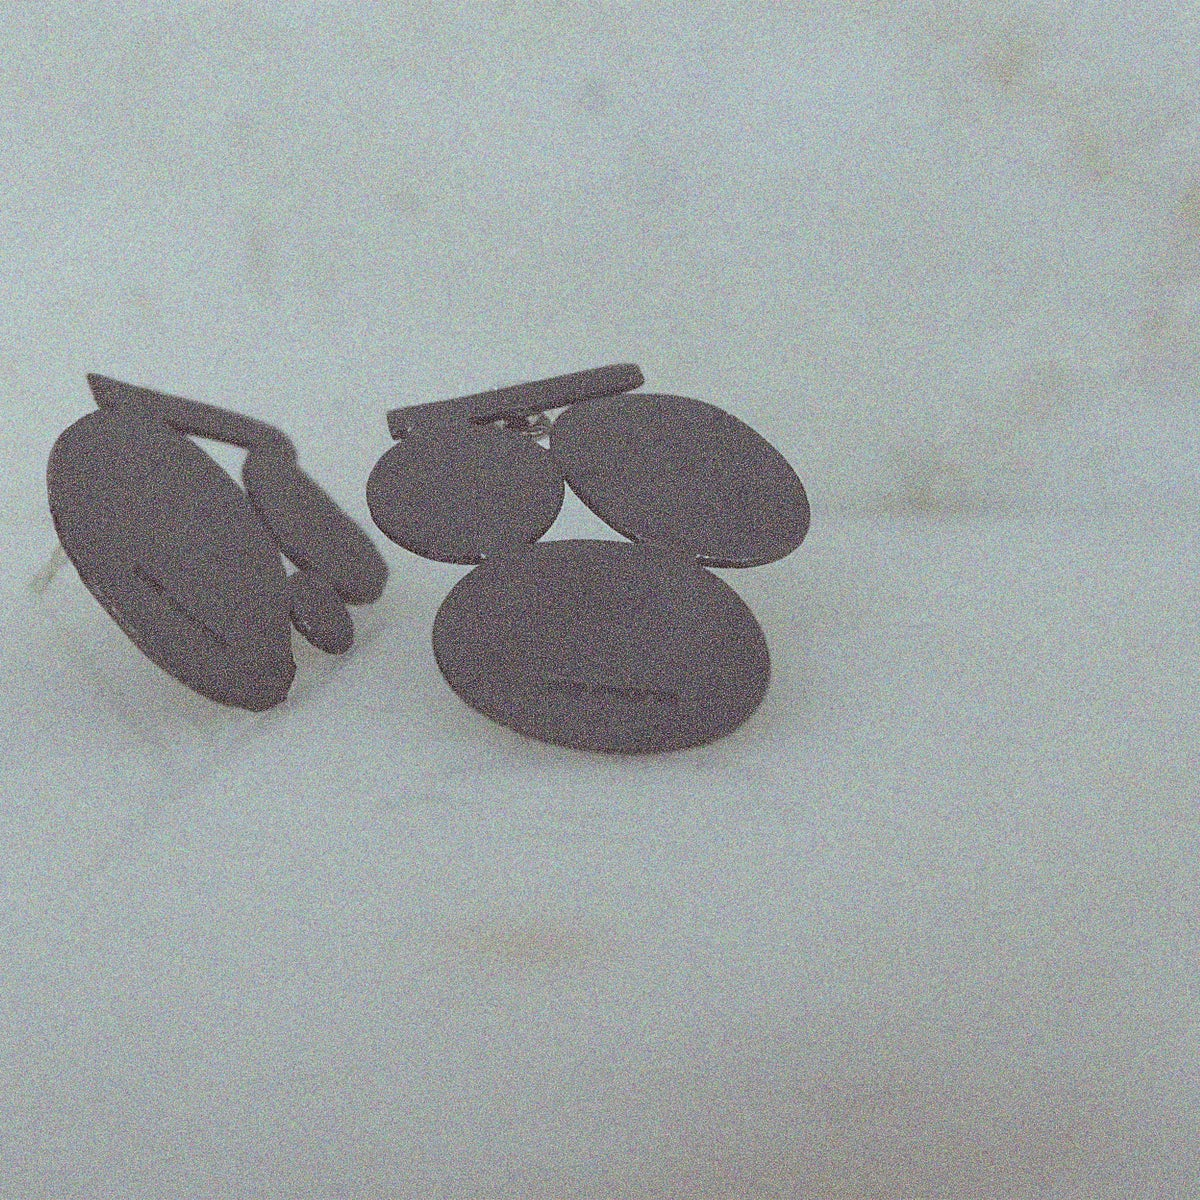 Image of Paola Midi Pebble Earrings  in Oxidised Silver